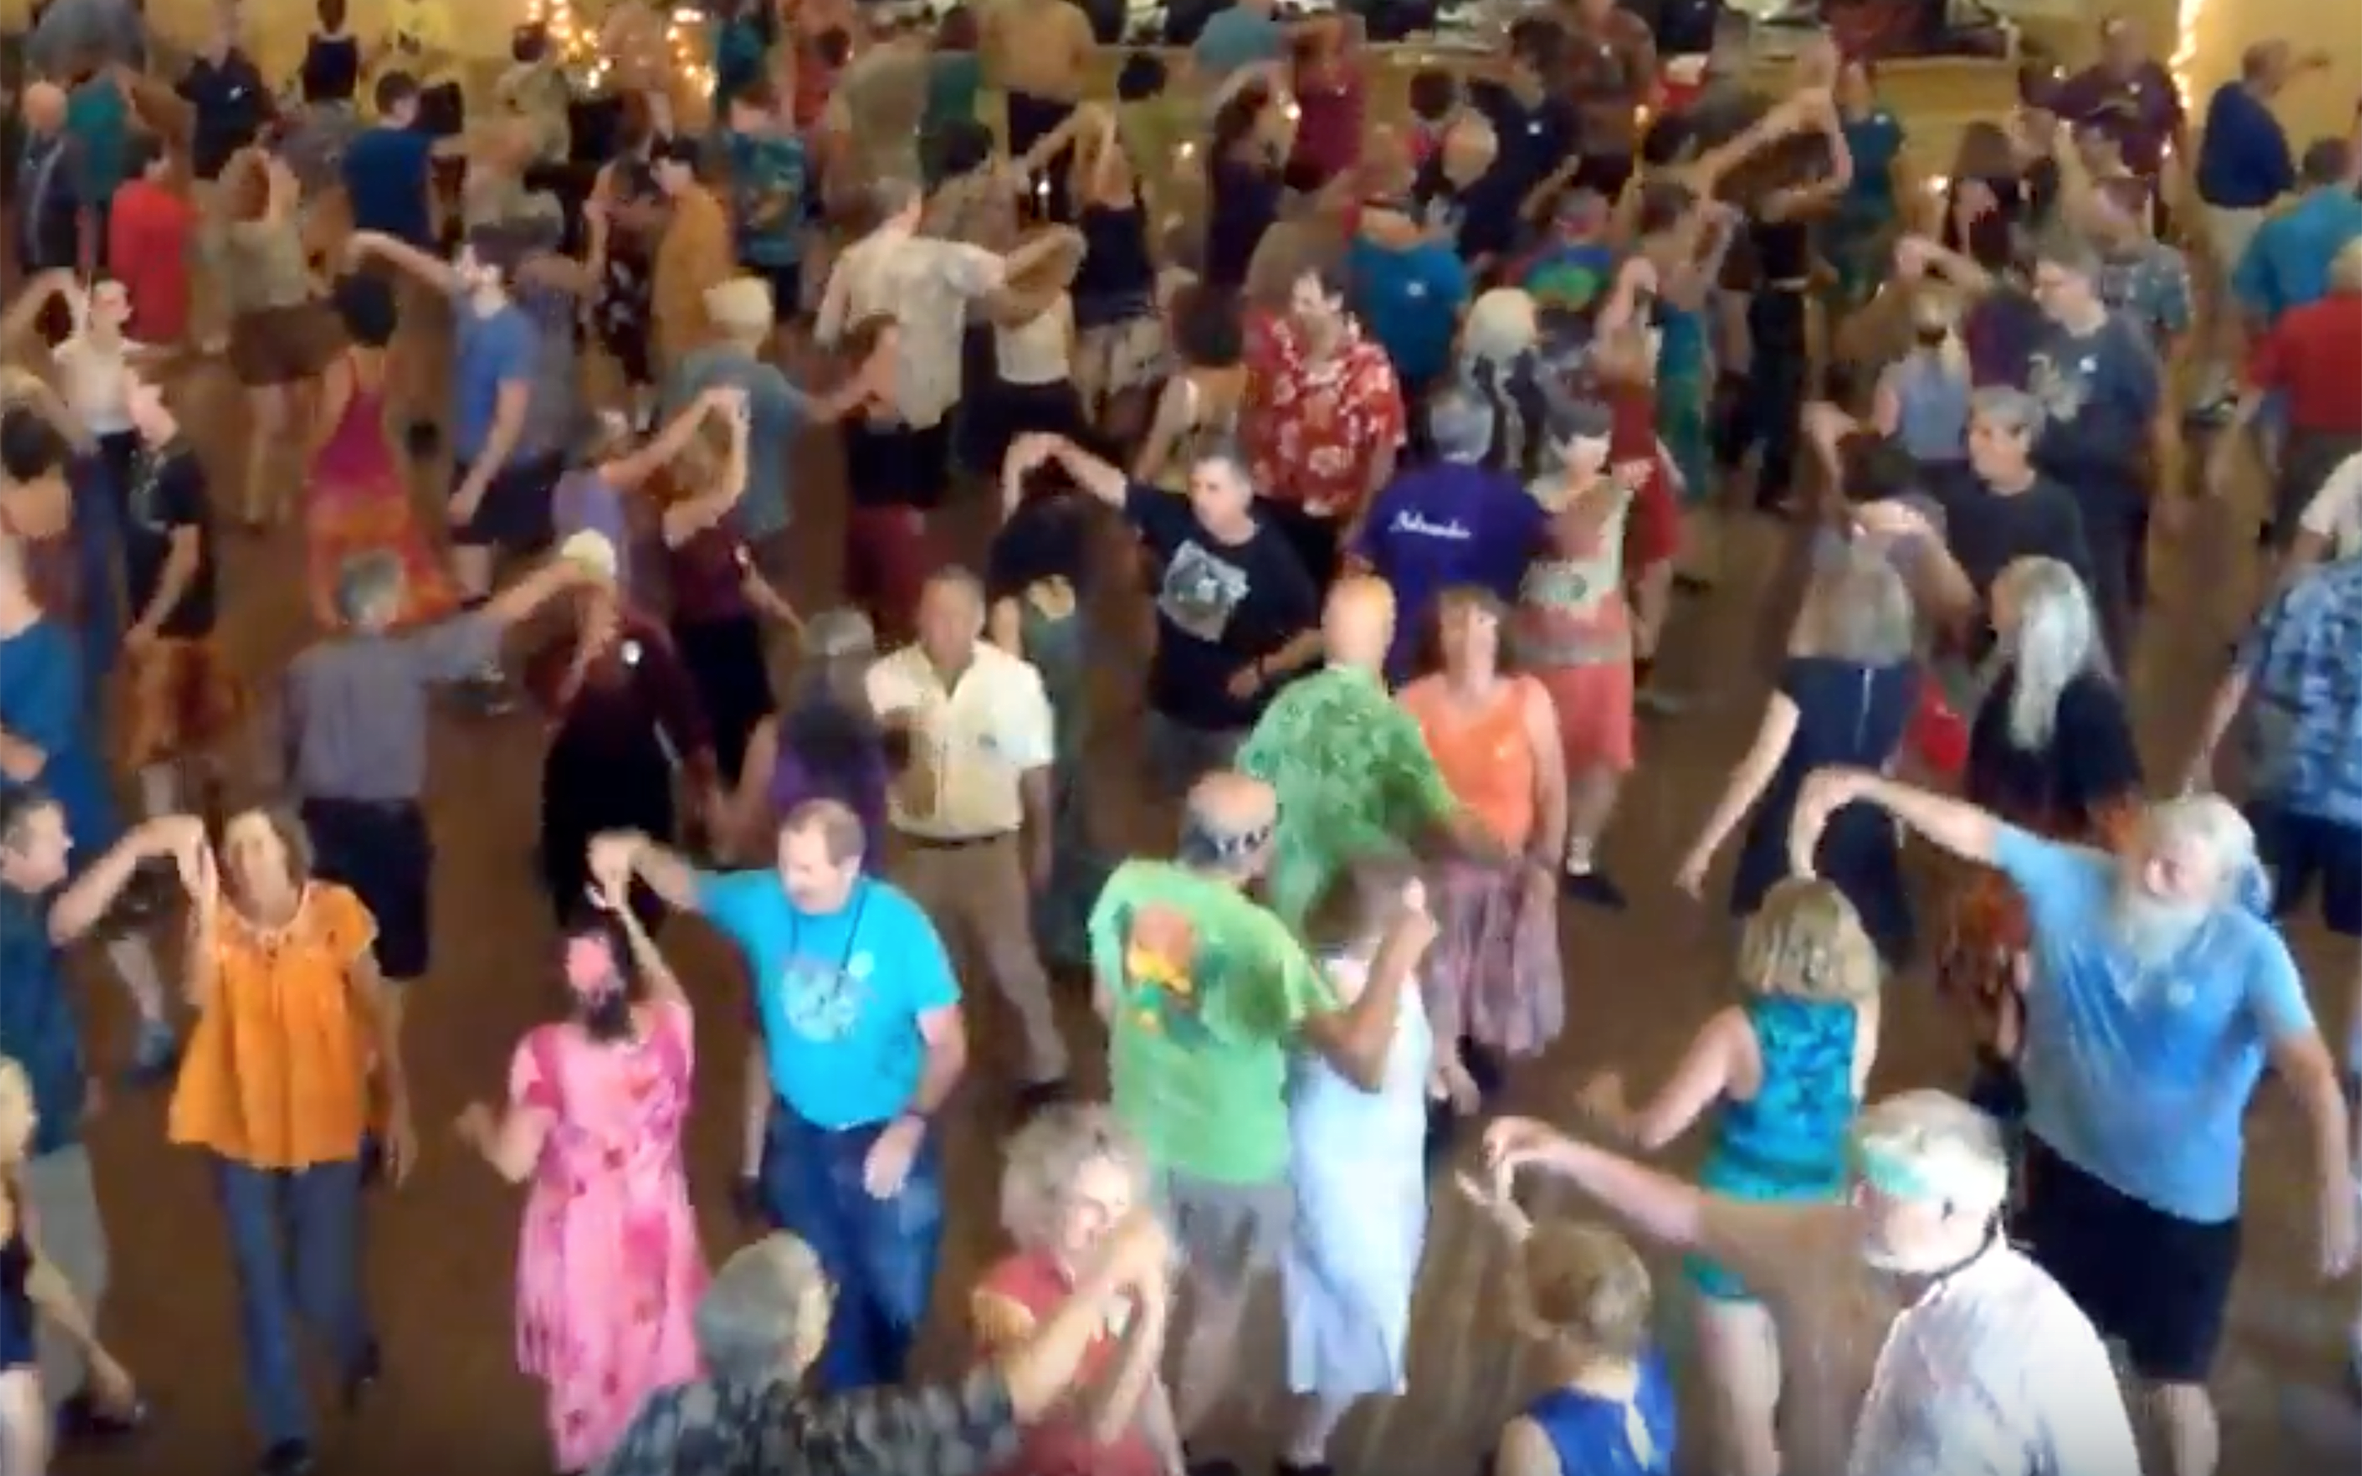 "196.CONTRA DANCE / UK / USA - CONTRA DANCE is a folk dance made up of long lines of couples. With mixed origins from English country dance, Scottish, French dance styles in the 17th century, Contra dance can be found around the world and have much popularity in North America and the United Kingdom. It is a social dance that one can attend without a partner. The dancers form couples, and the couples form sets of two couples in long lines starting from the stage and going down the length of the dance hall. Couples progress up and down these lines, dancing with each other couple in the line. The dance is led by a caller who teaches the sequence of figures in the dance before the music starts. Callers describe the series of steps called ""figures"". It takes 64 beats, after which the pattern is repeated."